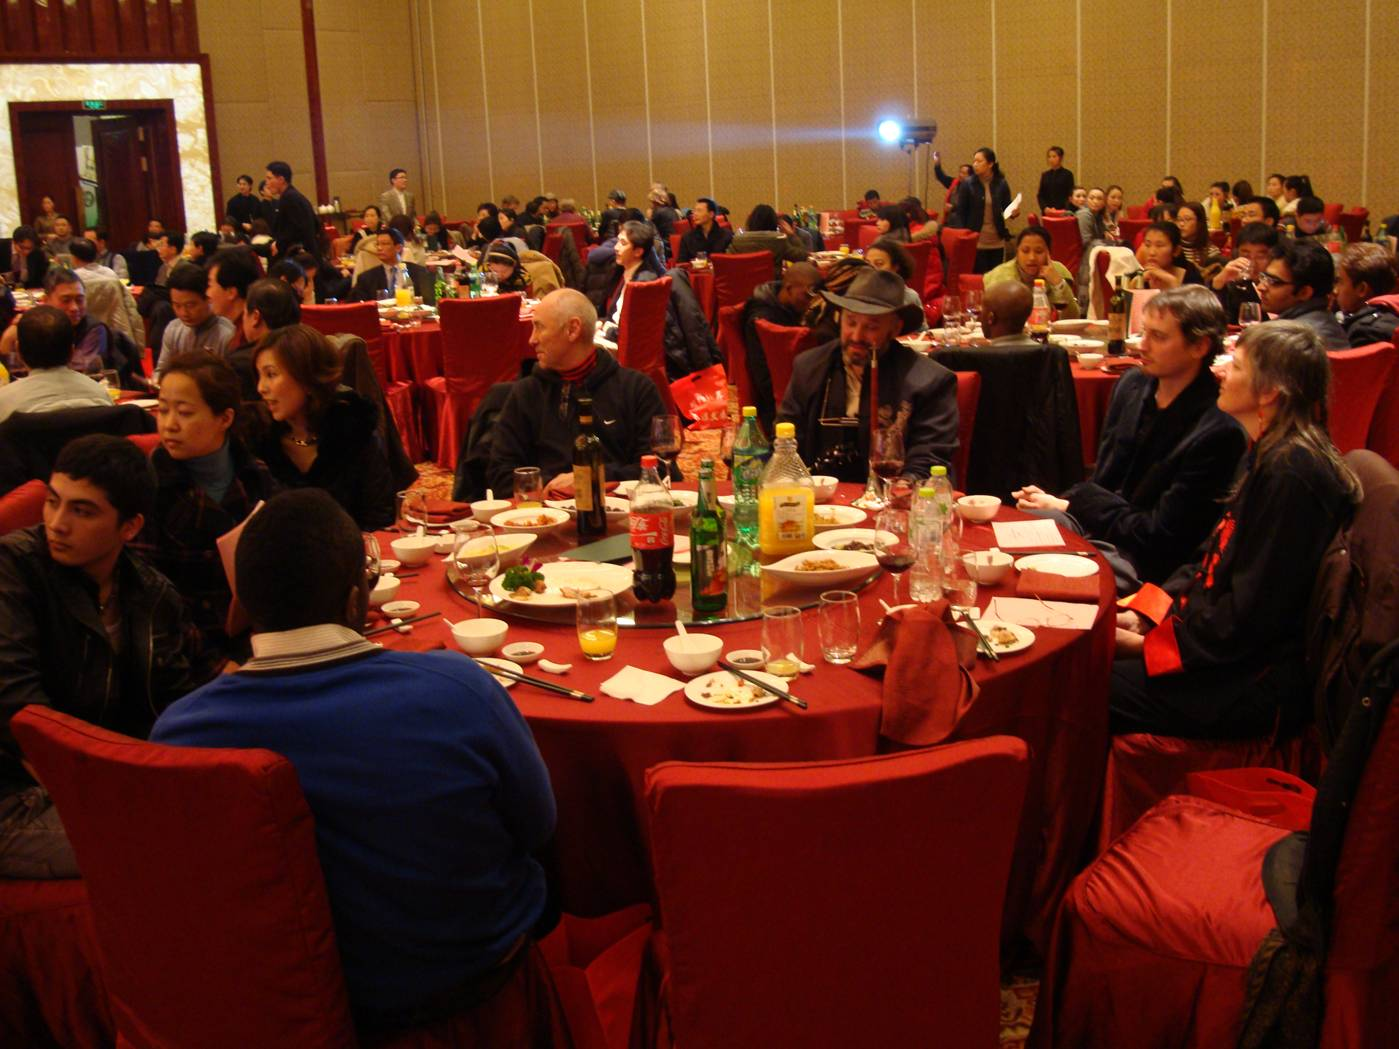 Ouf table, and guests of the AEFI New Year's Party, Wuxi, China